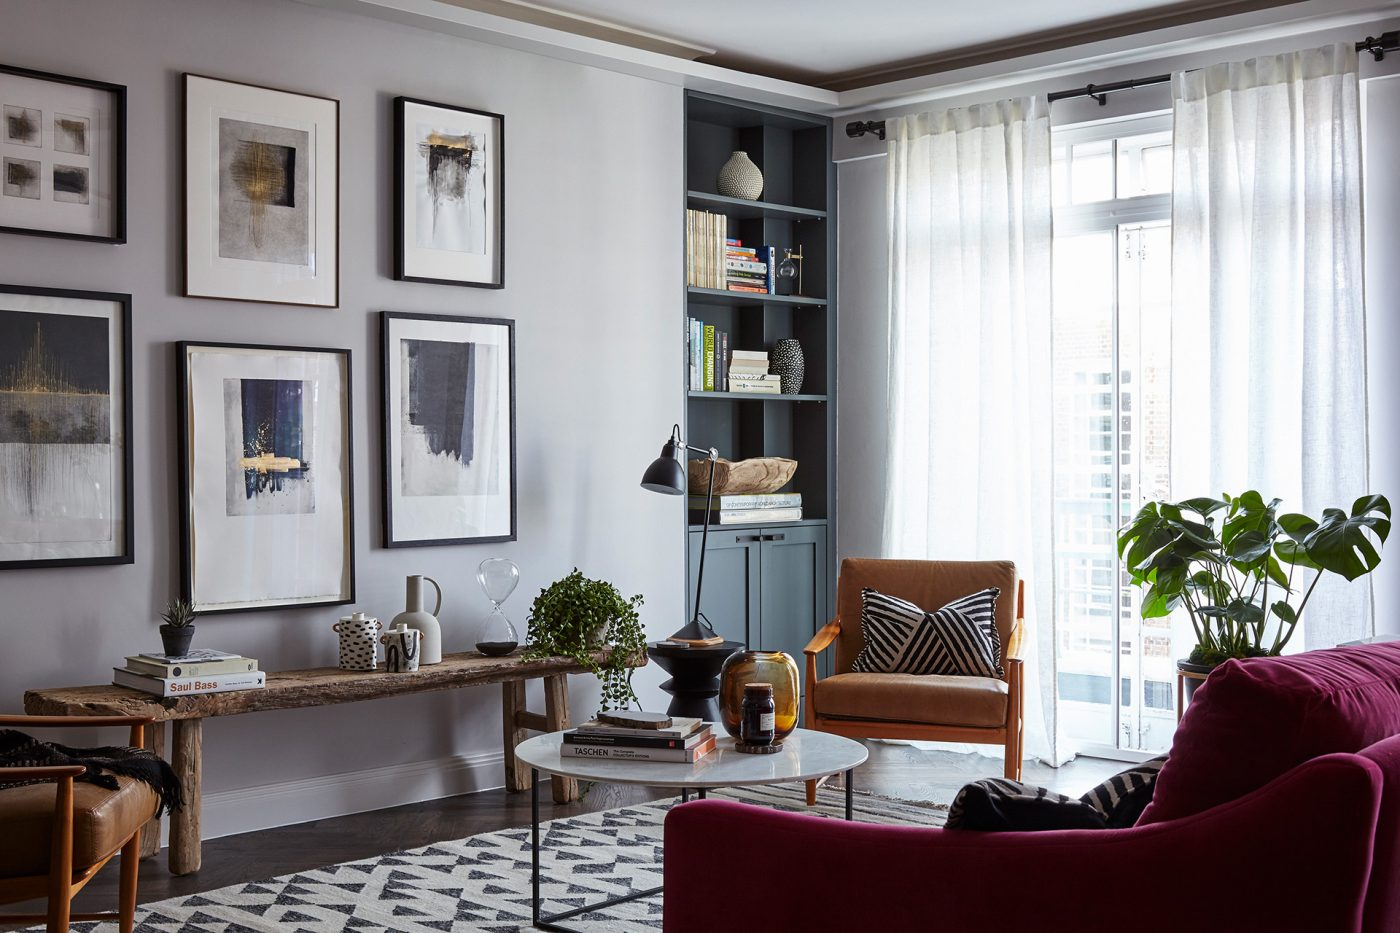 contemporary living room art stoves ireland regents park london apartment interiors design anna burles fresh cool modern frames wall rustic bench red couch light filled